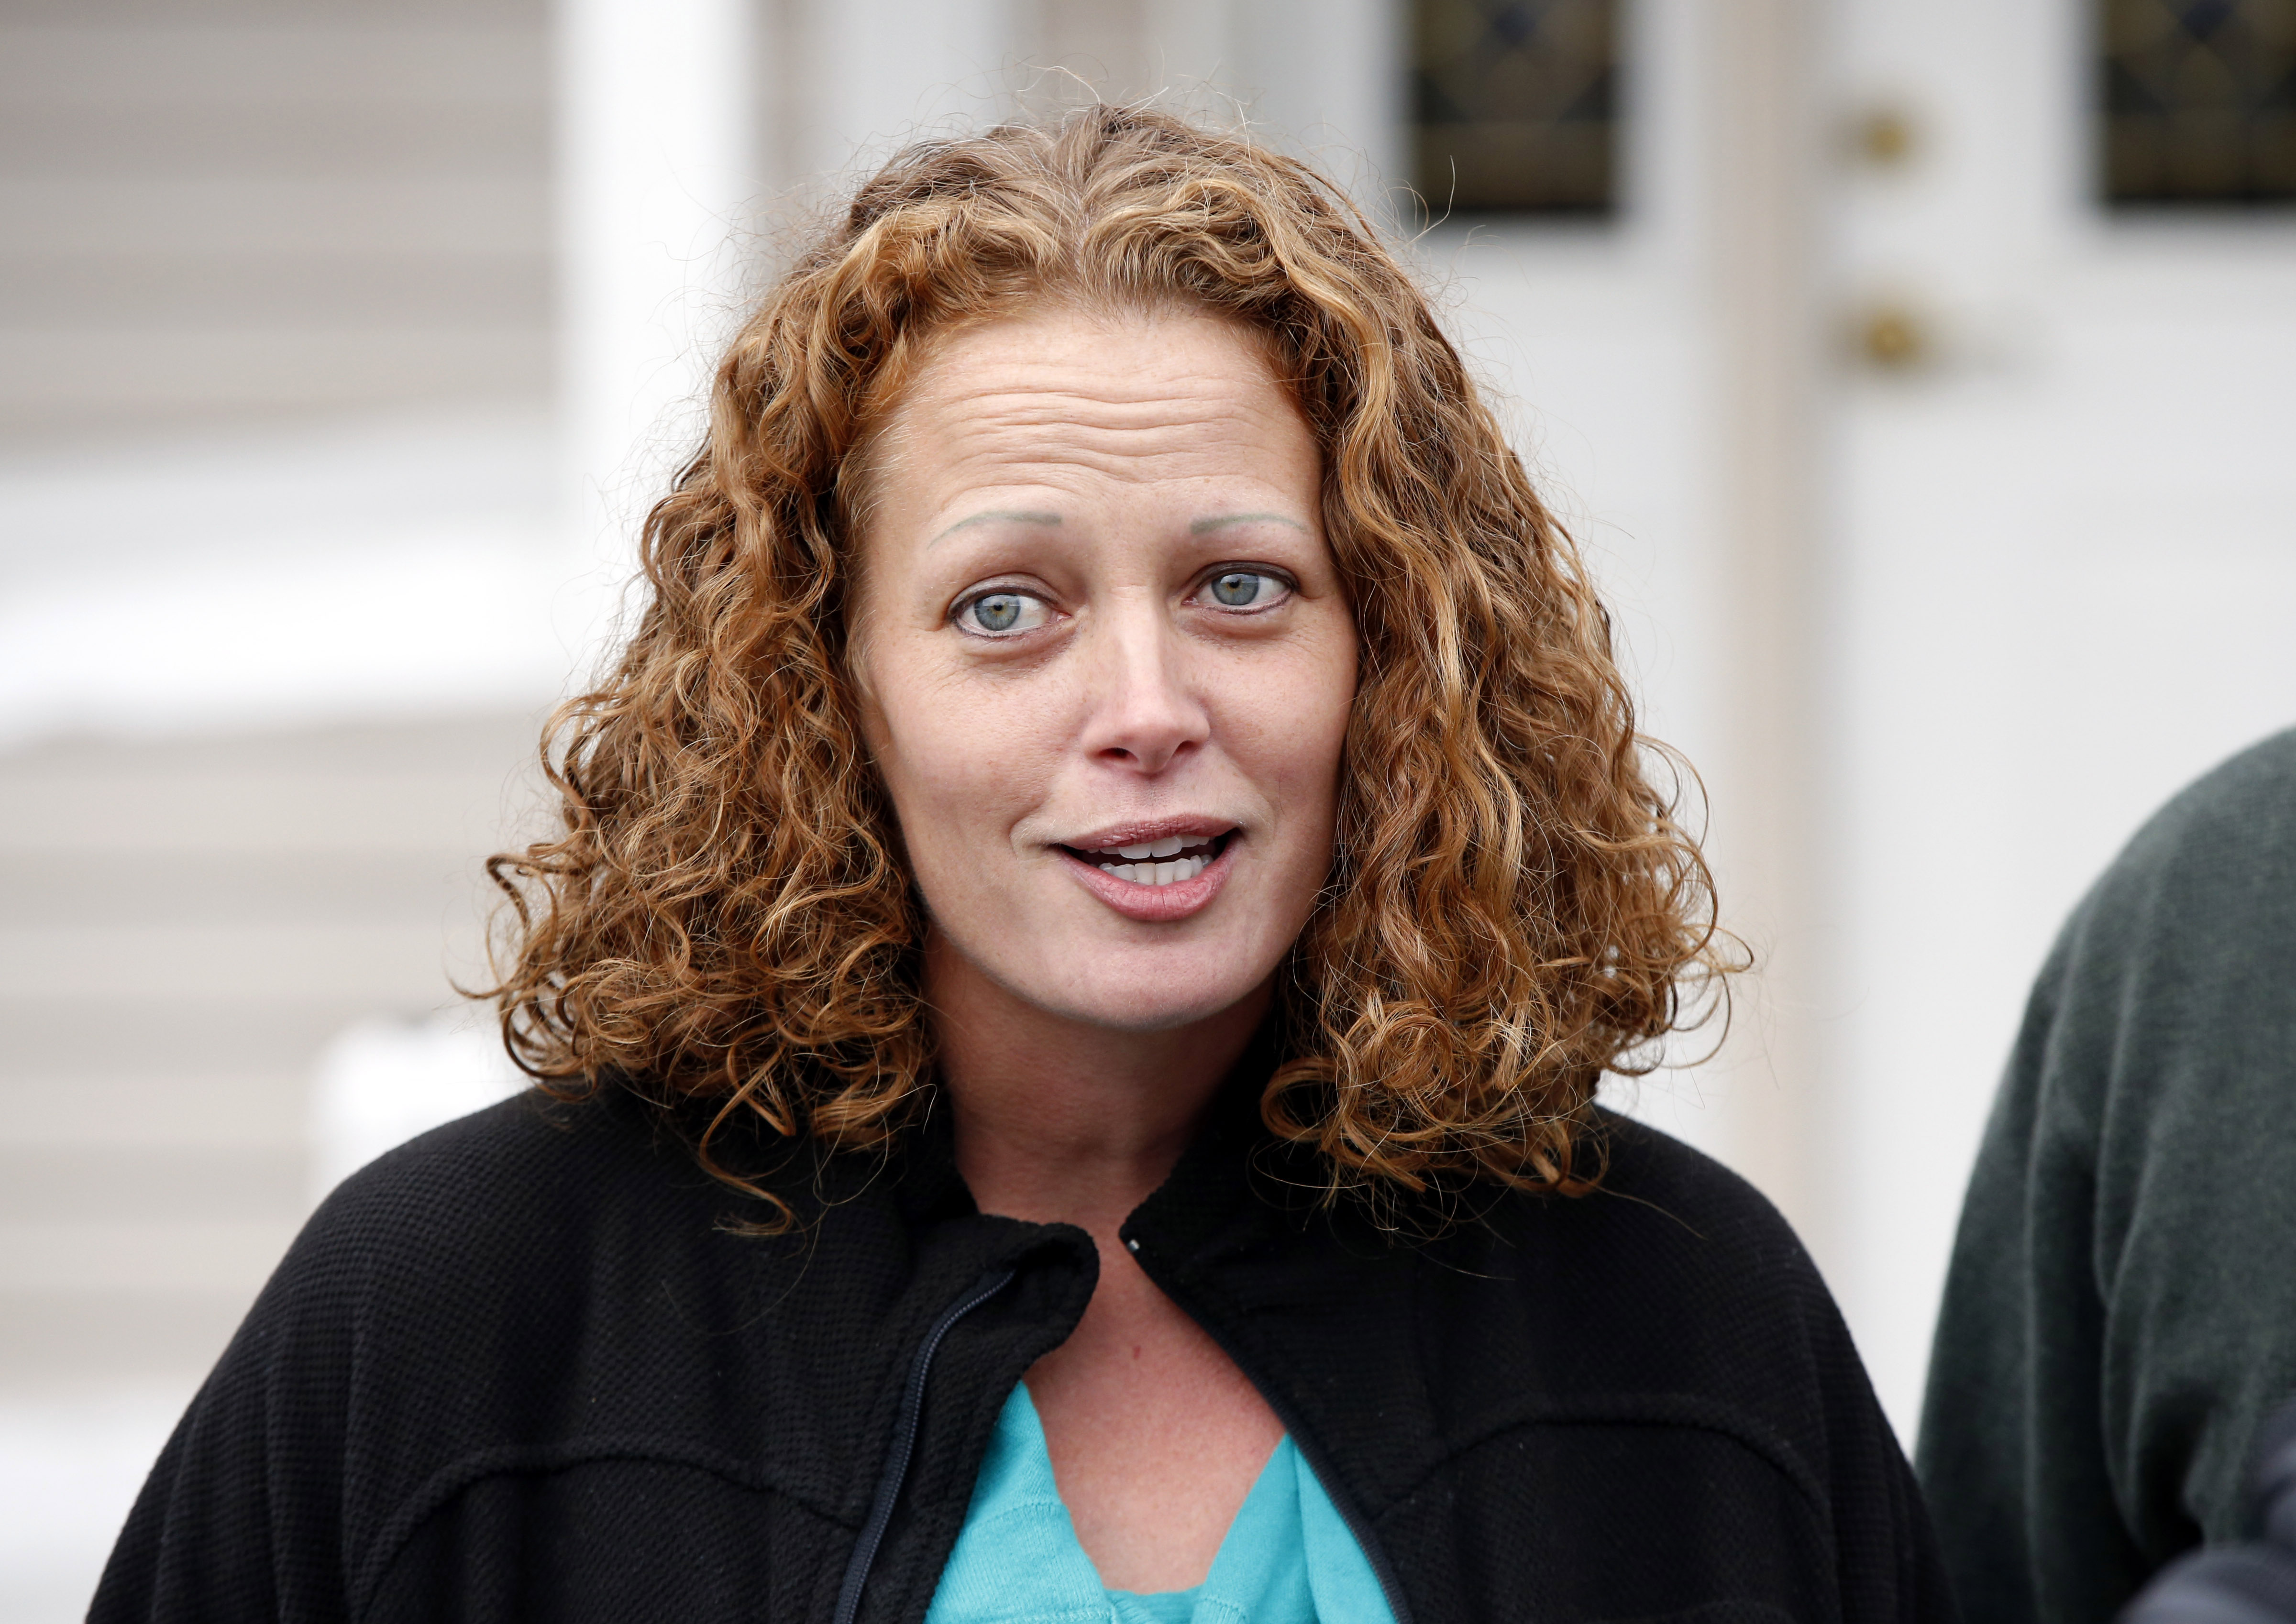 In this Oct. 31, 2014 file photo, nurse Kaci Hickox, speaks to the media outside her home in Fort Kent, Maine, after filing a lawsuit against the state of New Jersey. Photo: AP/ File